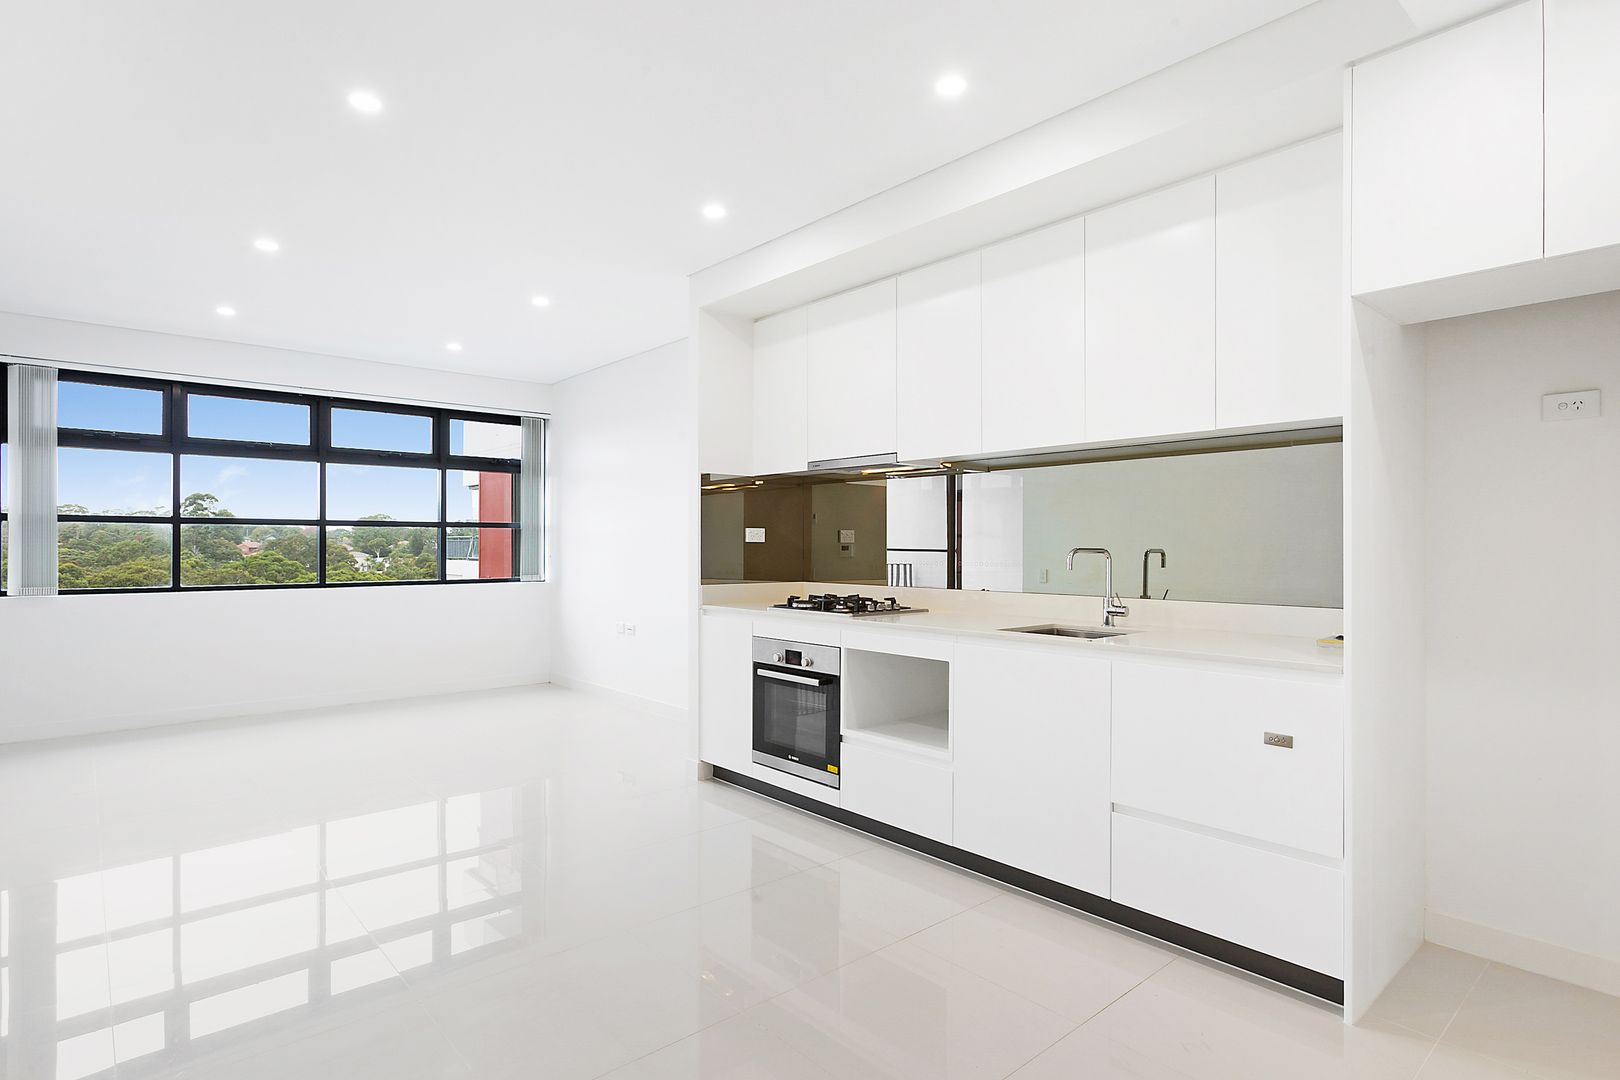 19/536 Mowbray Road, Lane Cove North NSW 2066, Image 0